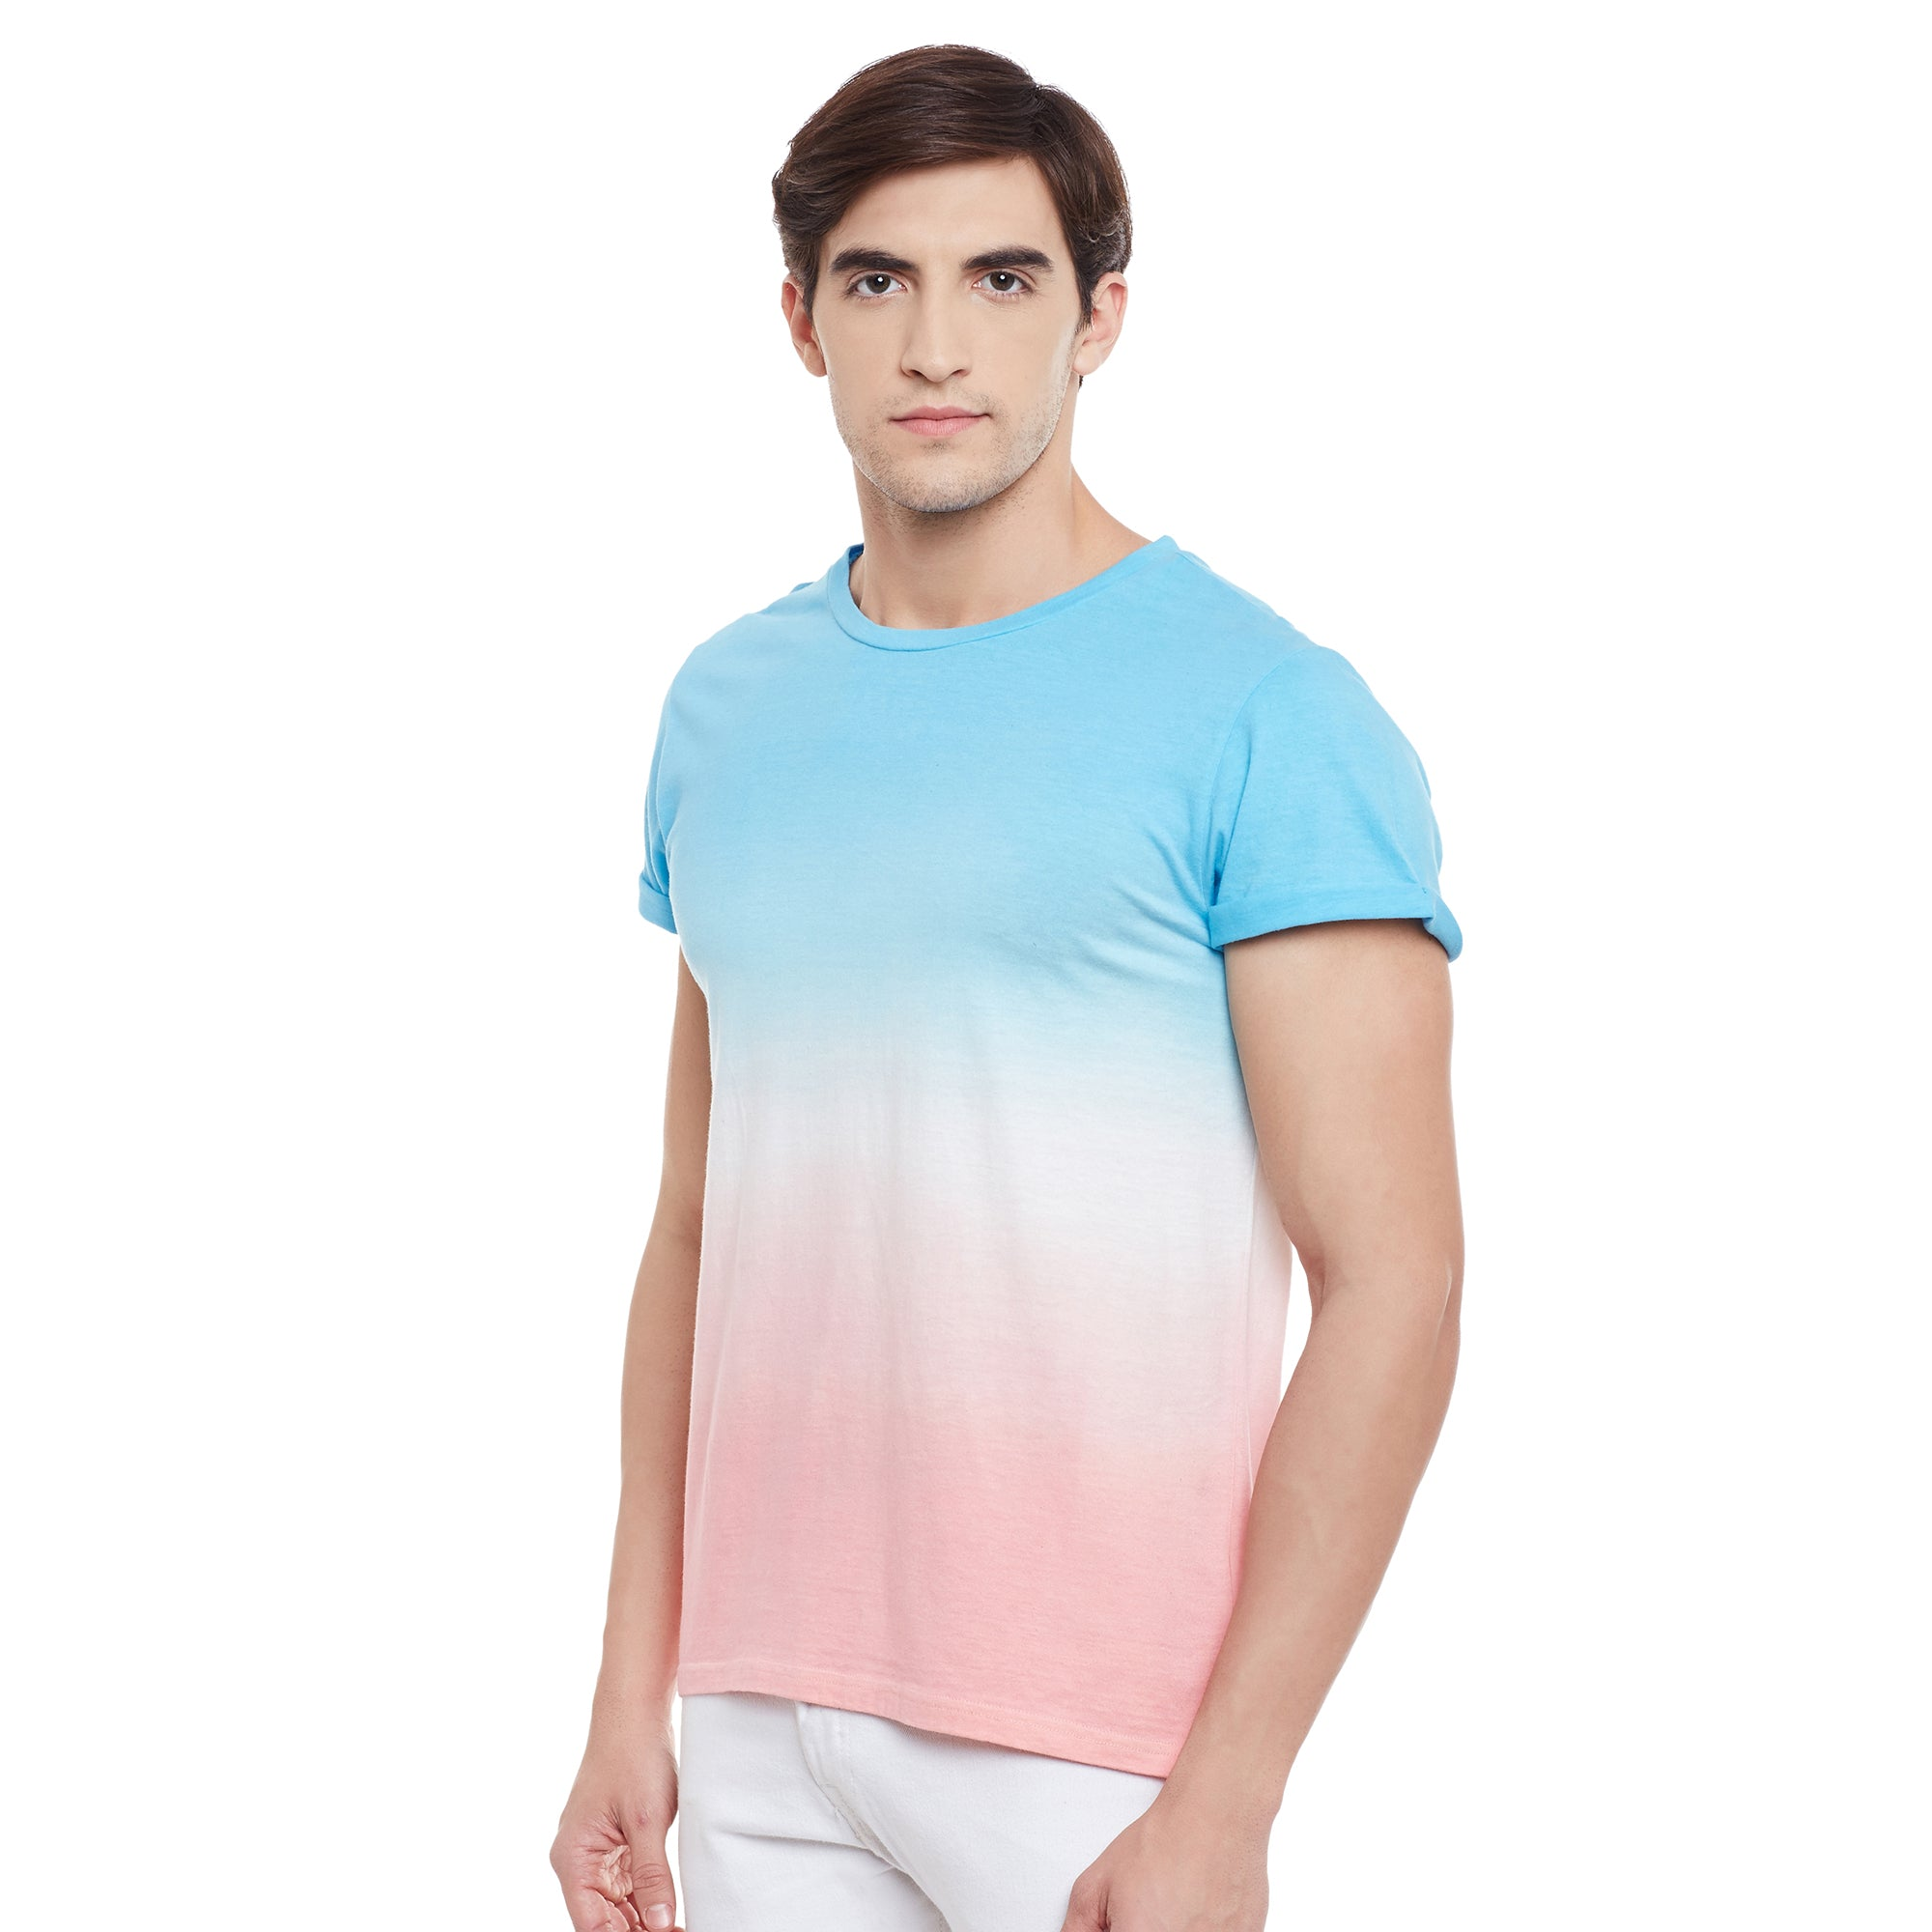 Atorse Mens Half Sleeve T-shirt Ombre Dyed